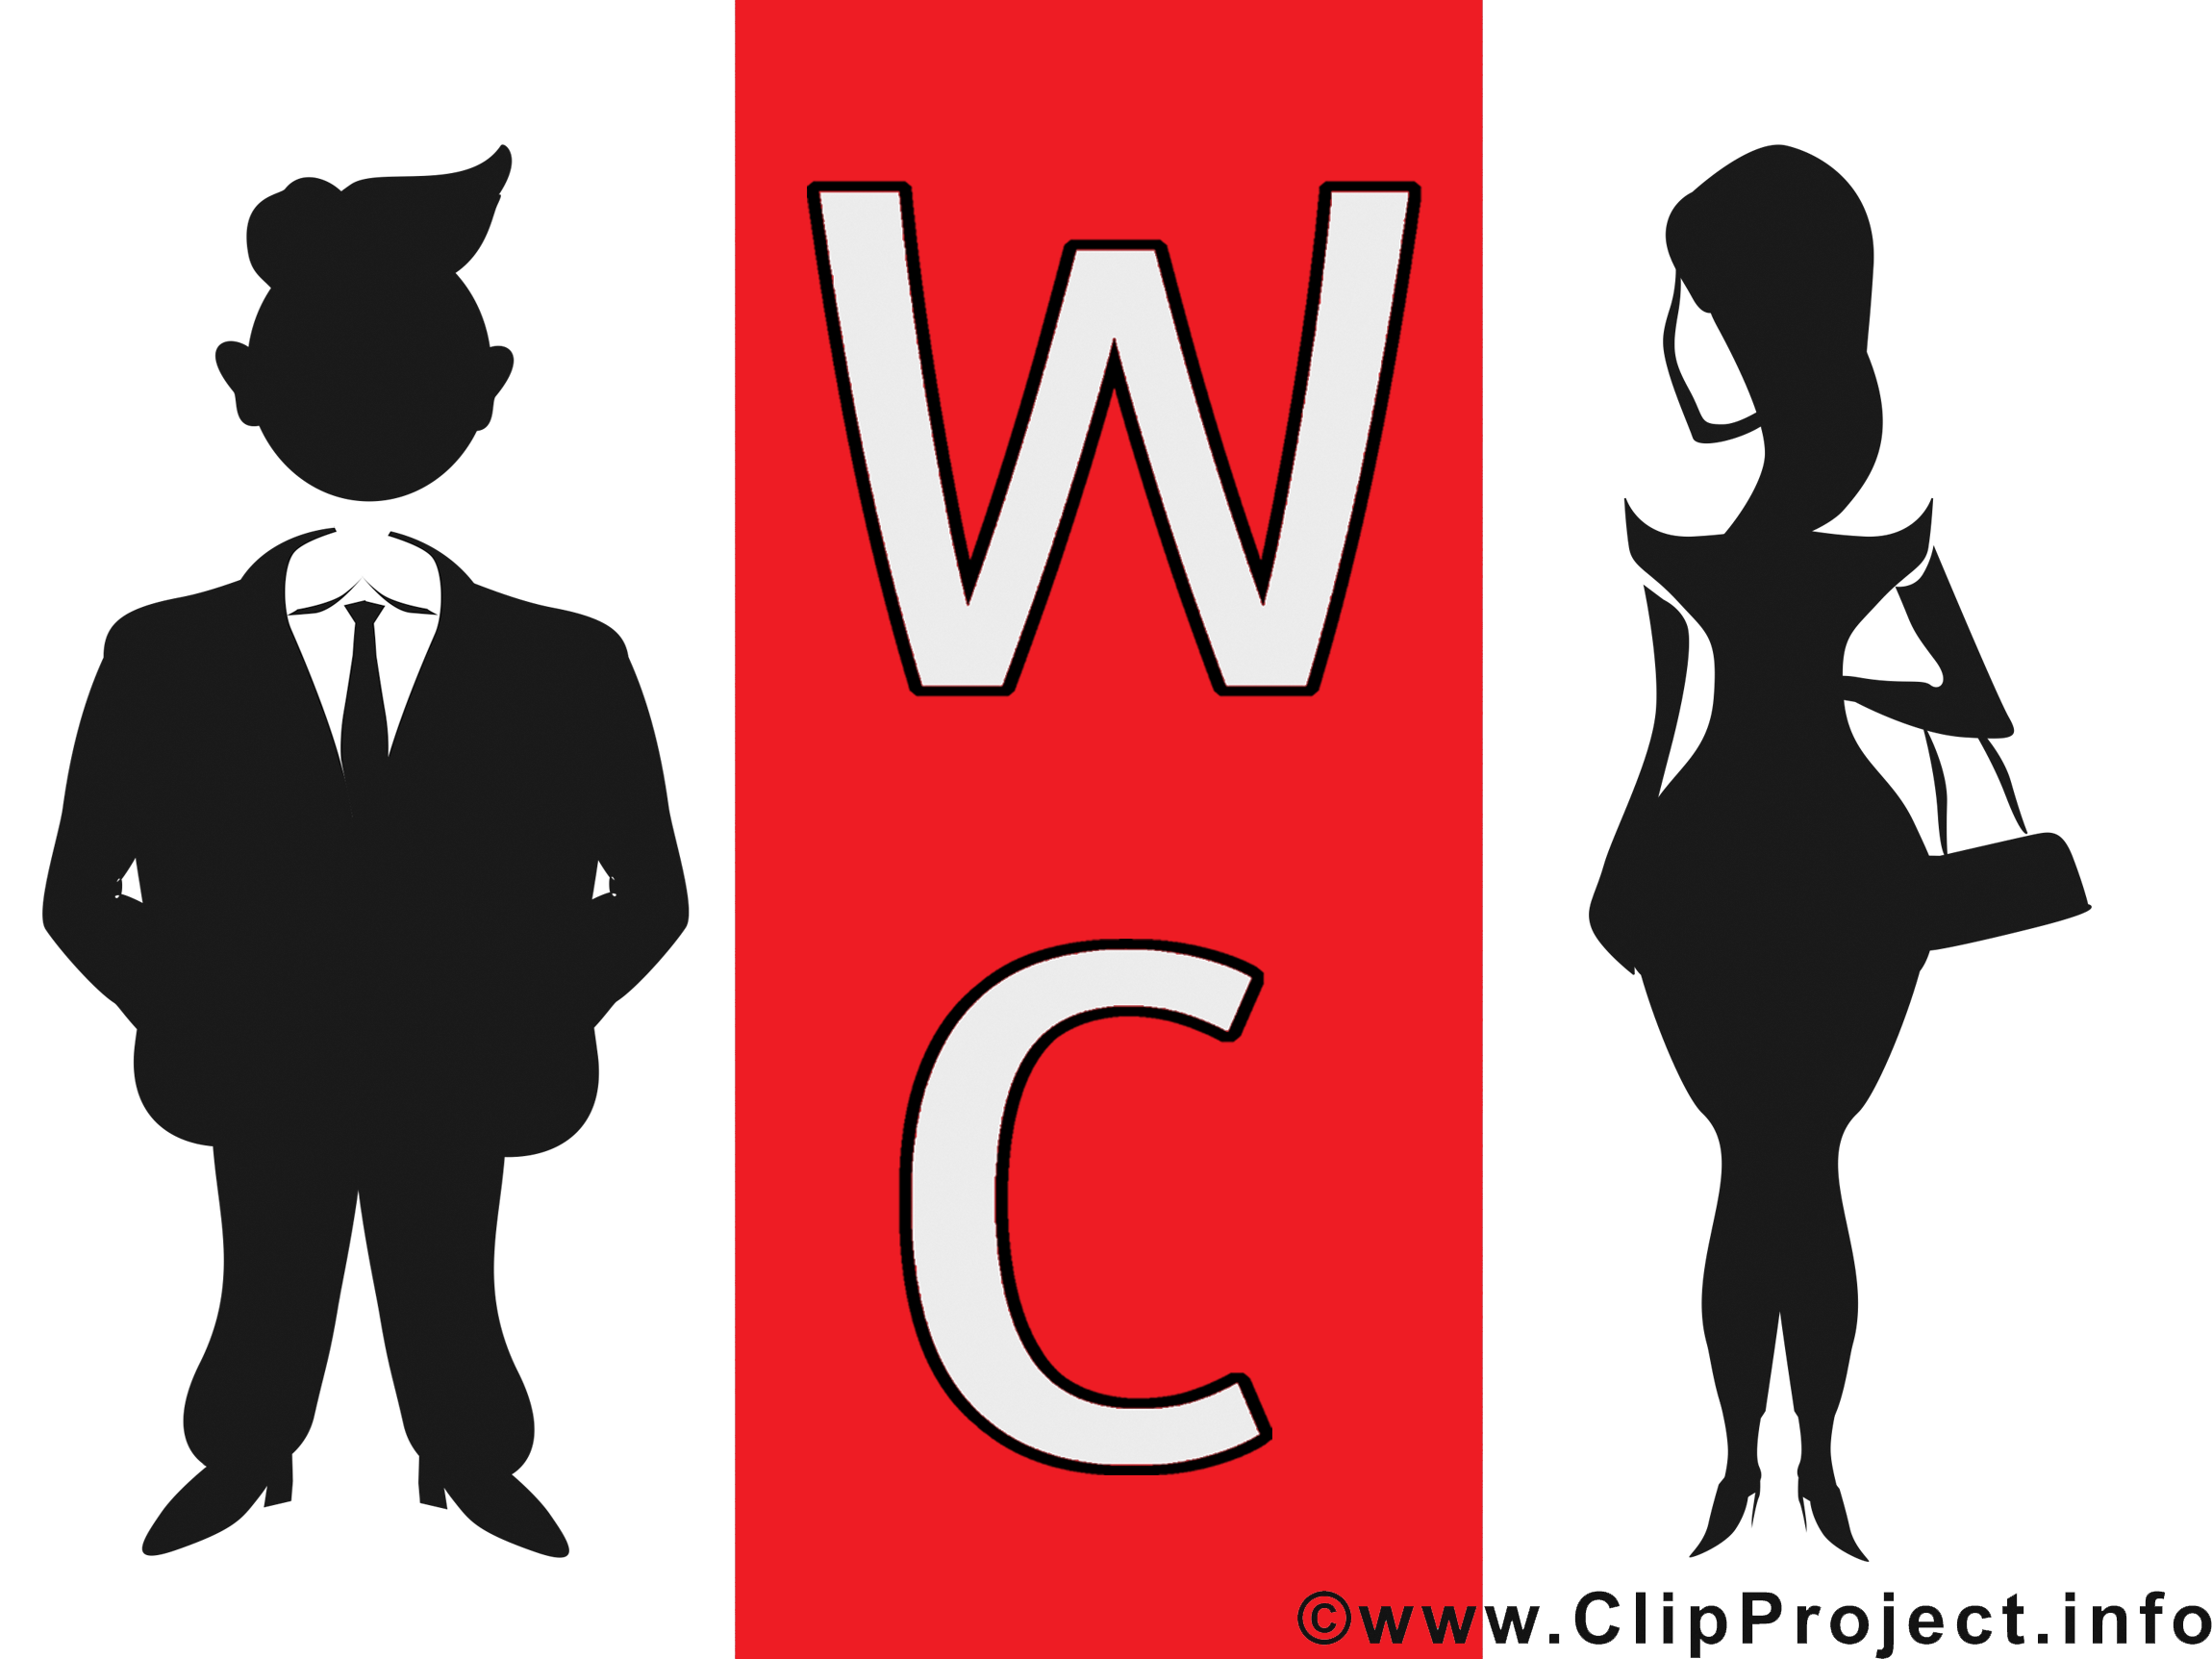 Wc cliparts kostenlos vector free Clipart wc besetzt - ClipartFest vector free